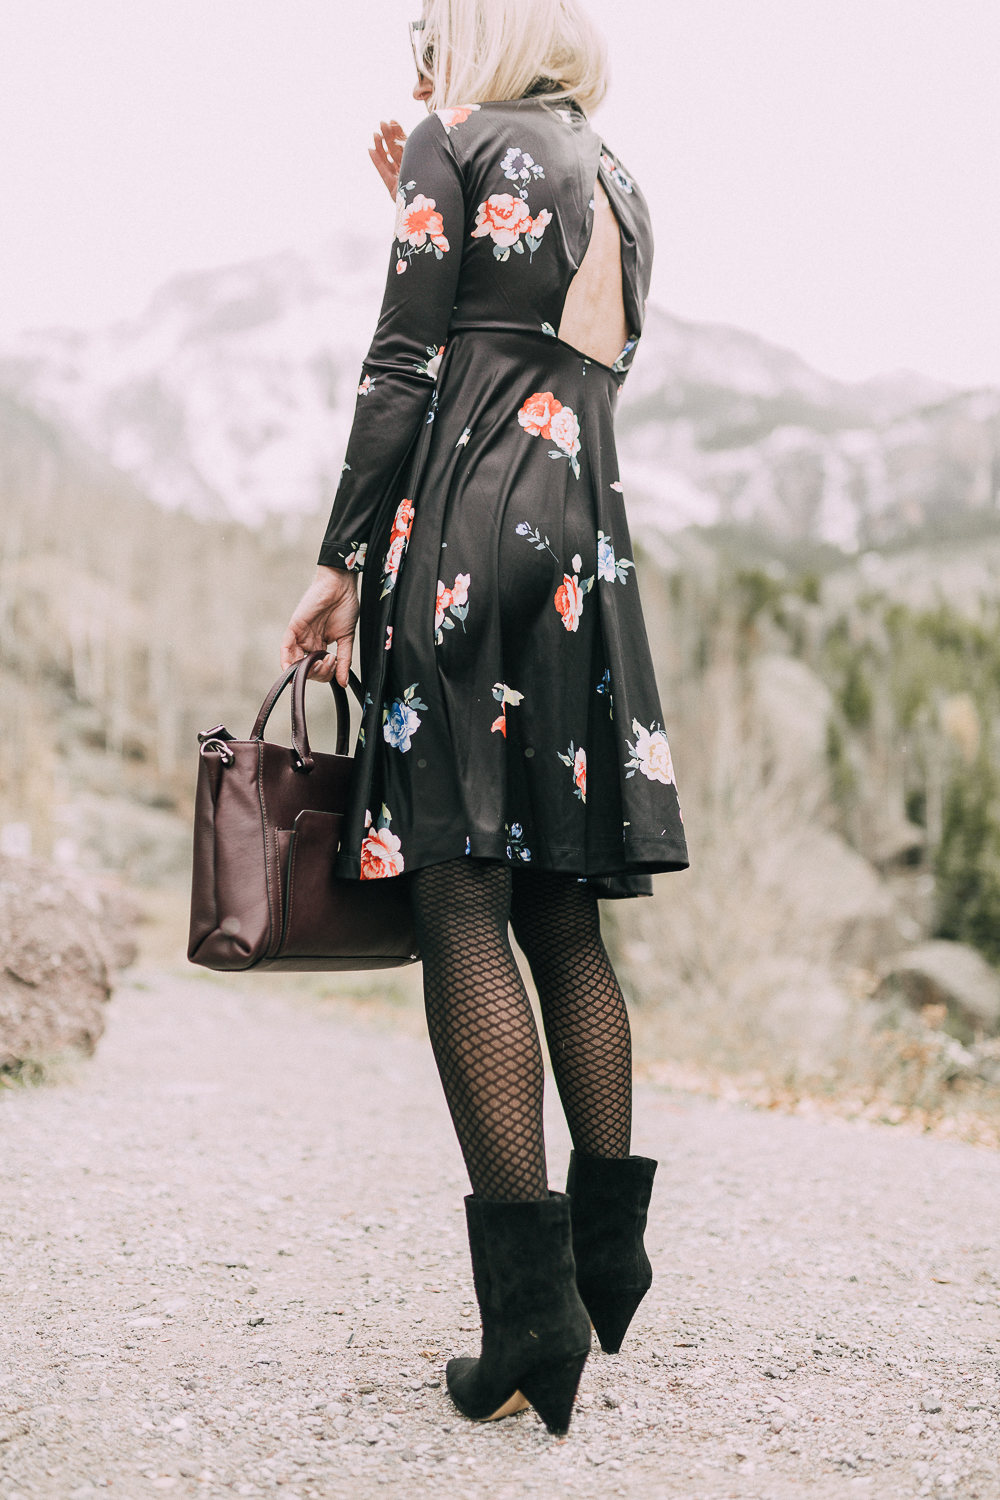 back of woman wearing regina black suede Booties by Vince Camuto paired with black open-back floral print dress and burgundy tote bag